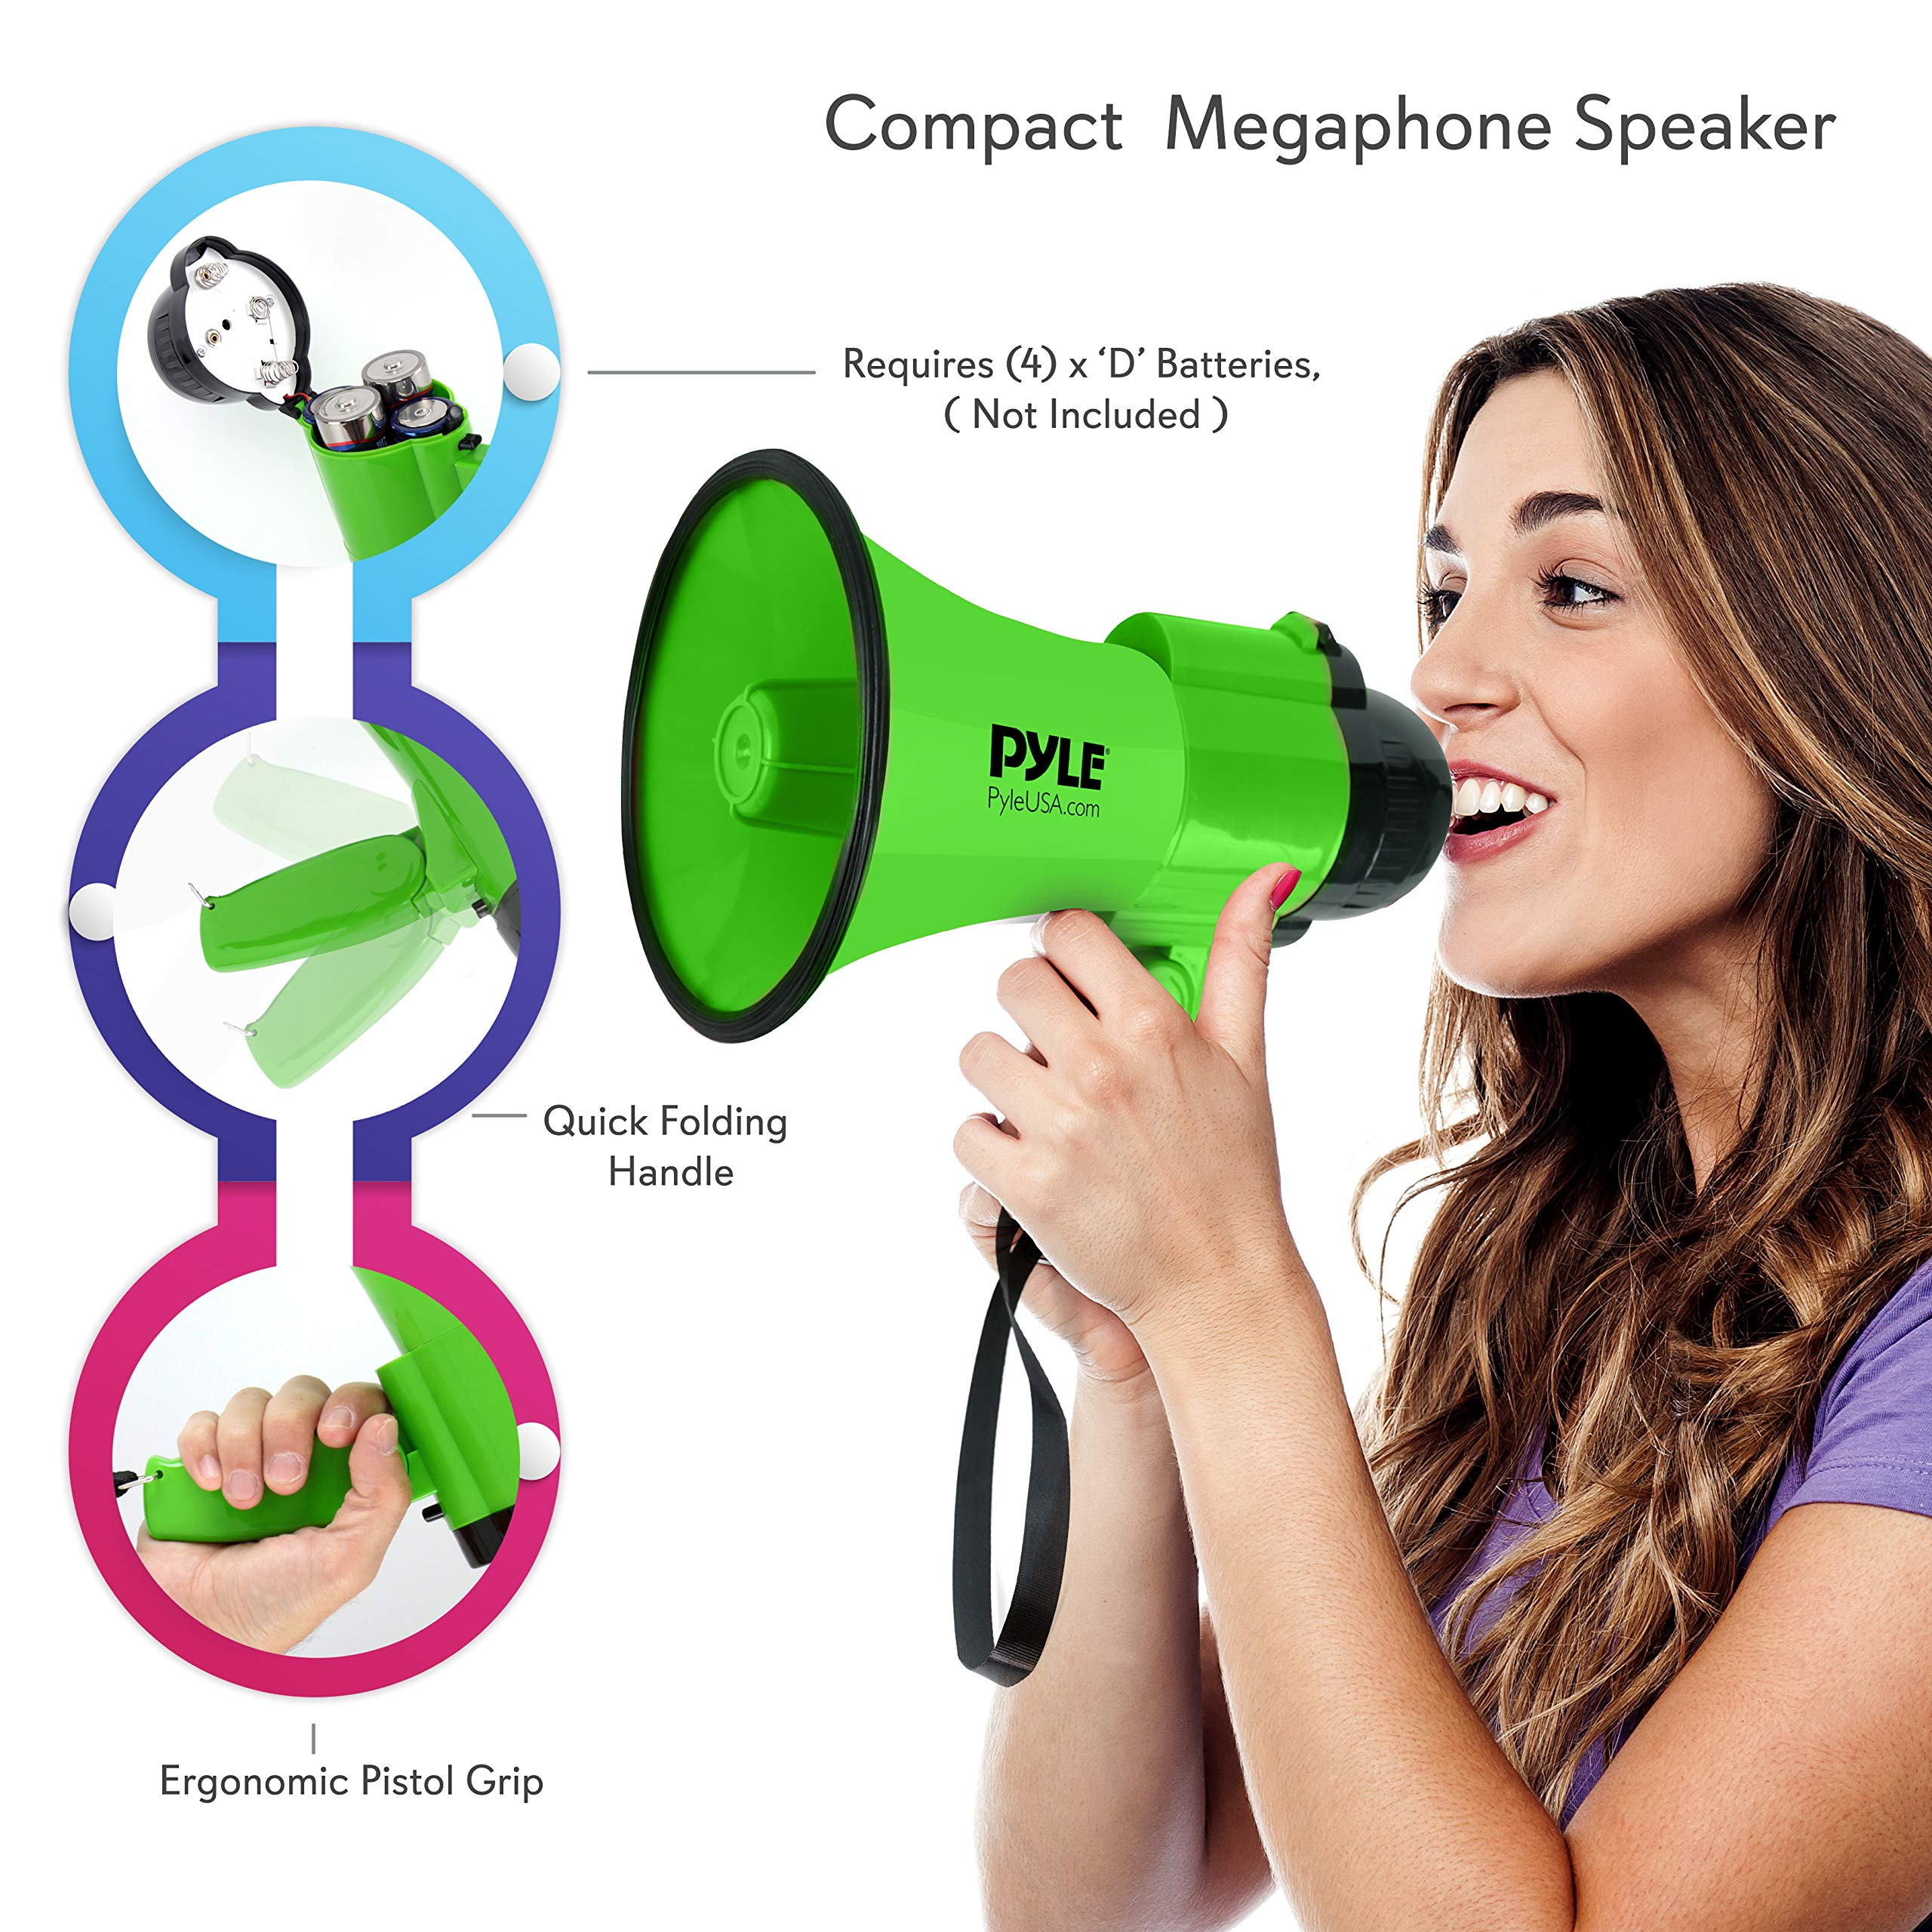 Portable Megaphone Speaker Siren Bullhorn - Compact and Battery Operated with 30 Watt Power, Microphone, 2 Modes, PA Sound and Foldable Handle for Cheerleading and Police Use - Pyle PMP32GR (Green) by Pyle (Image #3)